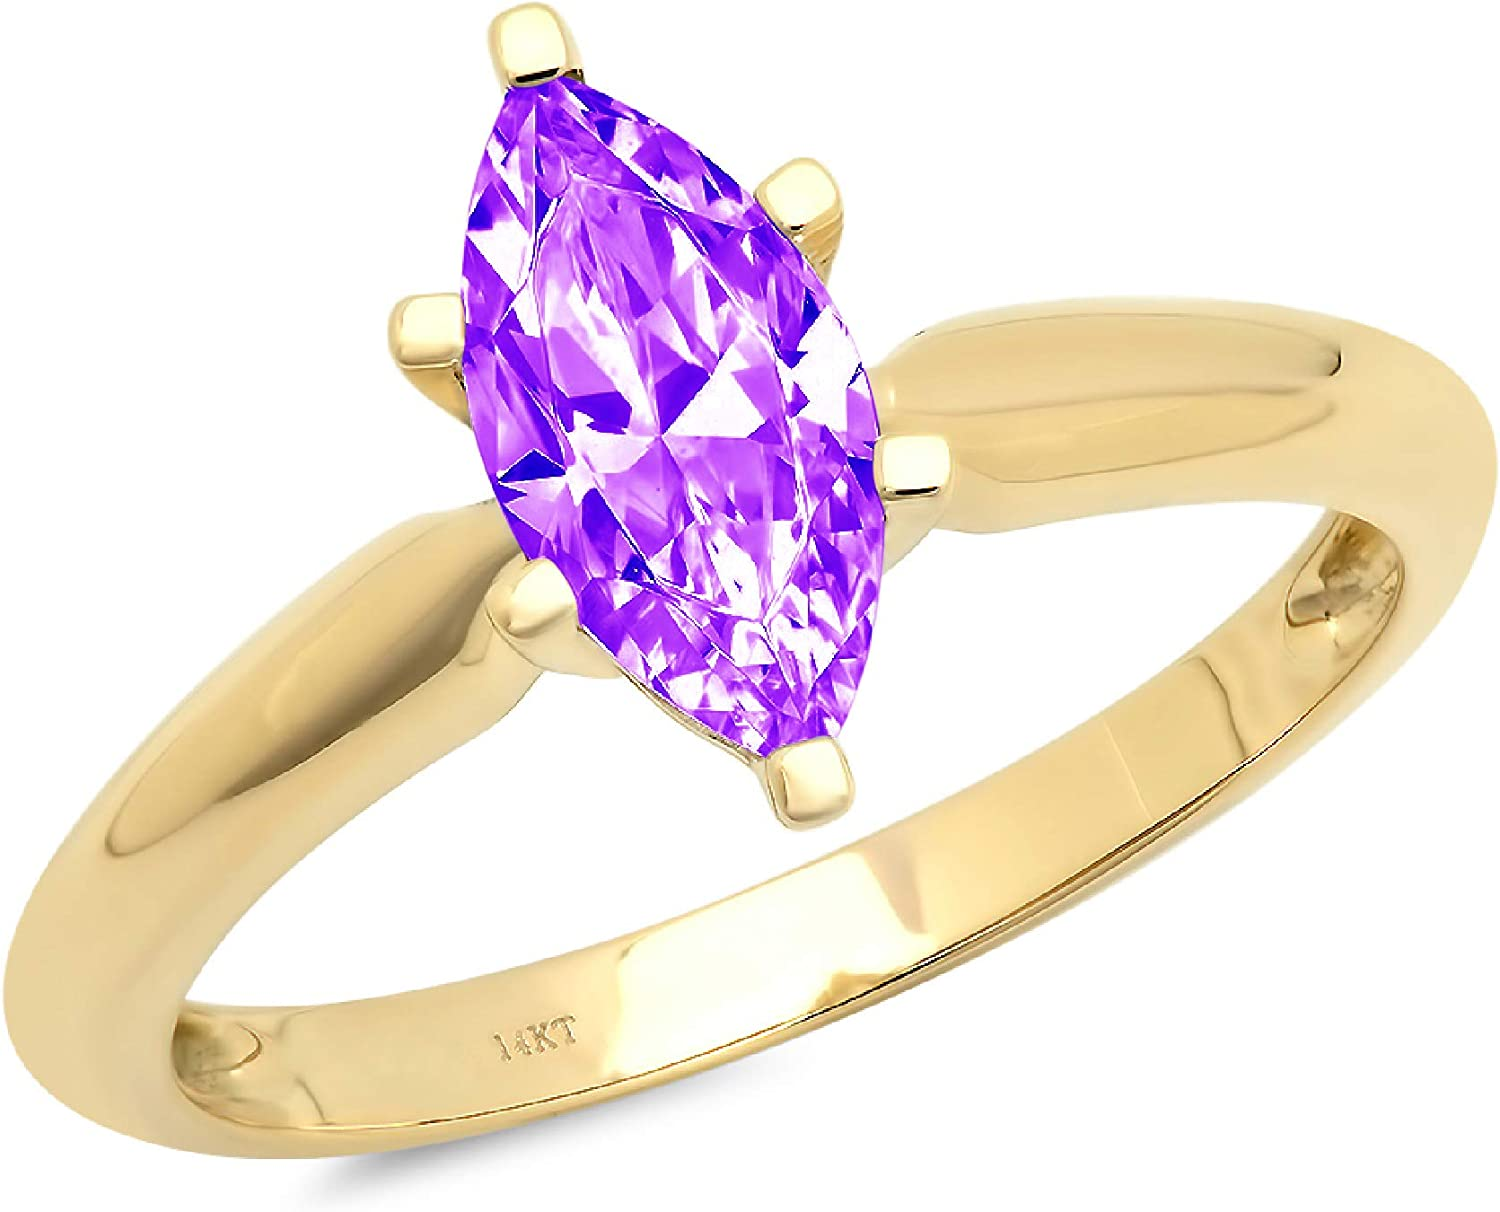 0.9ct Brilliant Marquise Cut Solitaire Natural Purple Amethyst Ideal VVS1 6-Prong Engagement Wedding Bridal Promise Anniversary Ring Solid 14k Yellow Gold for Women